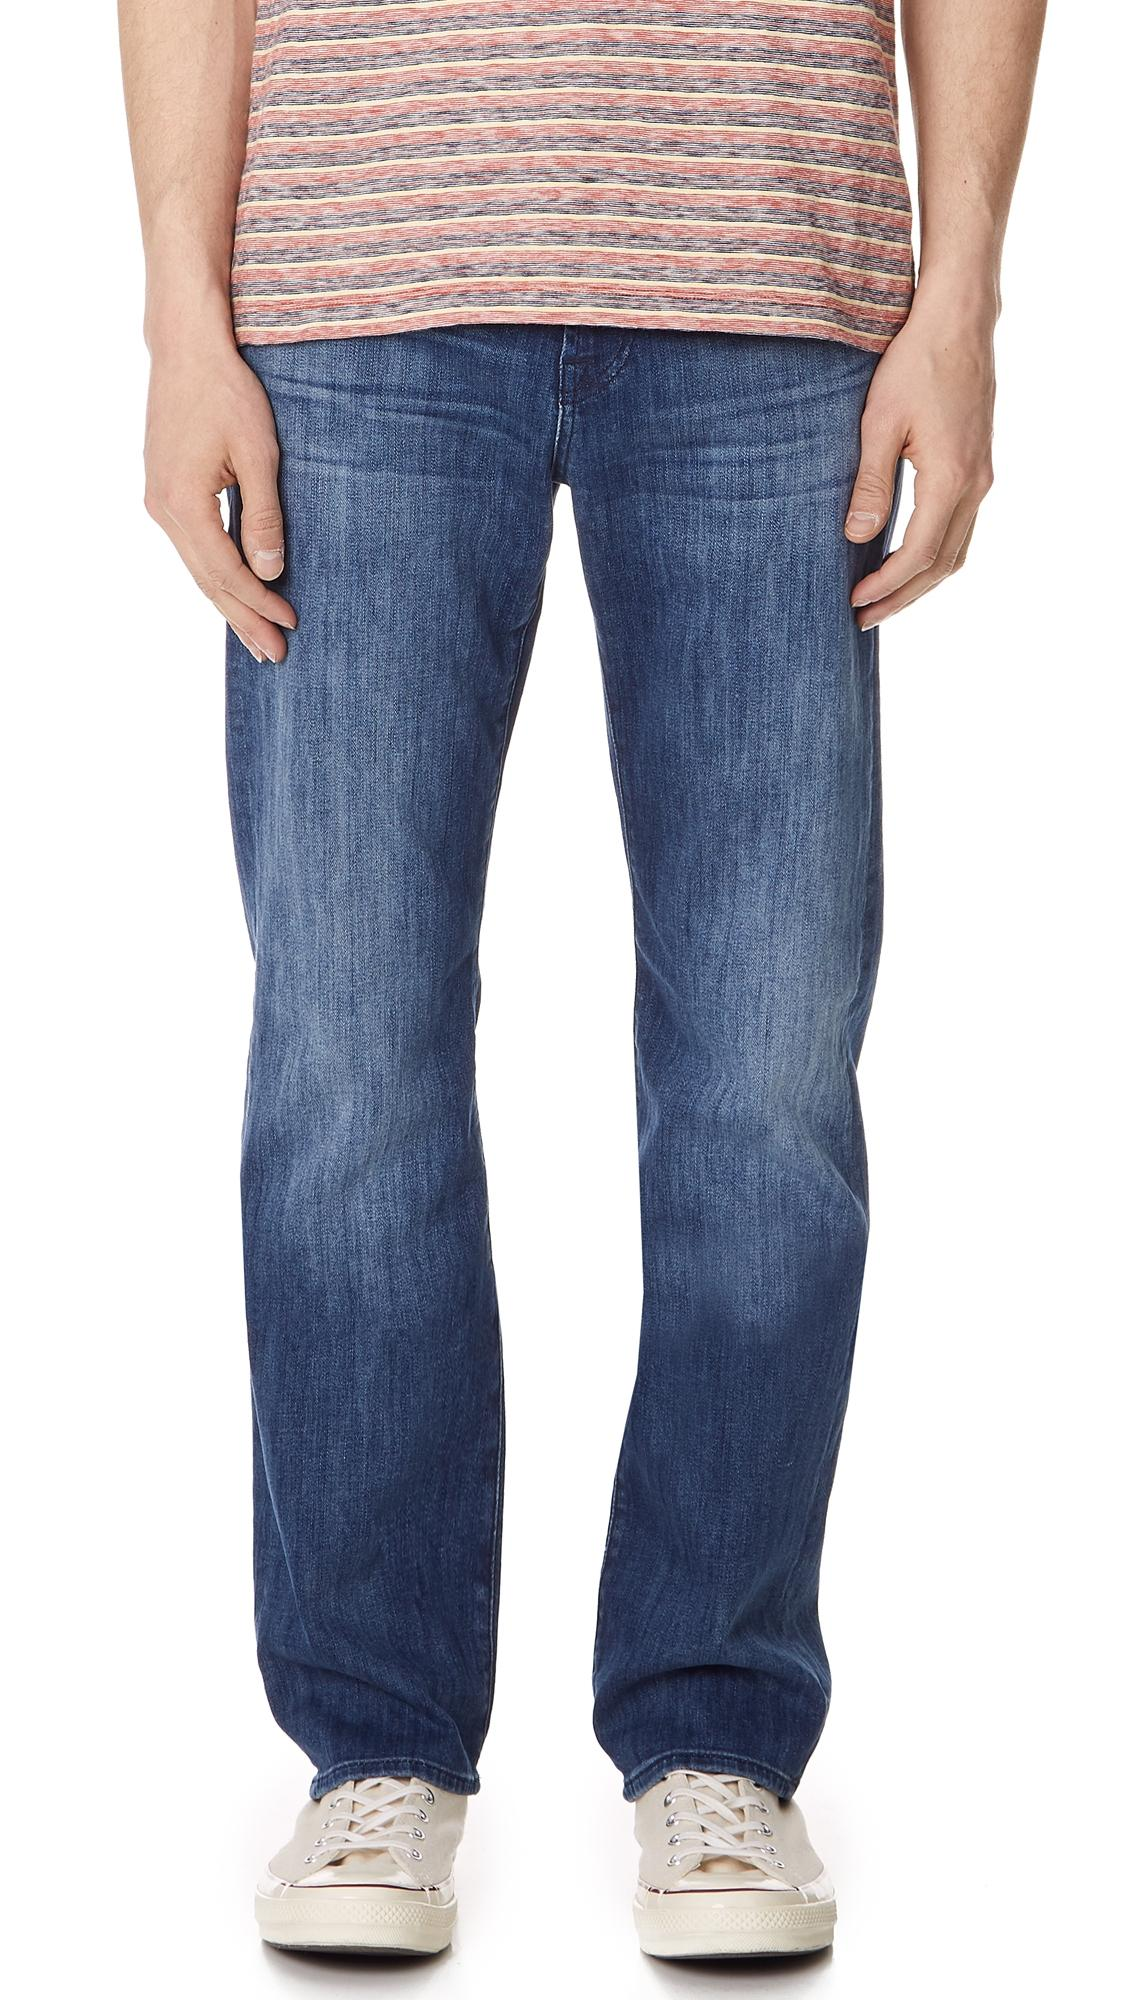 7 For All Mankind Austyn Jeans In Blue